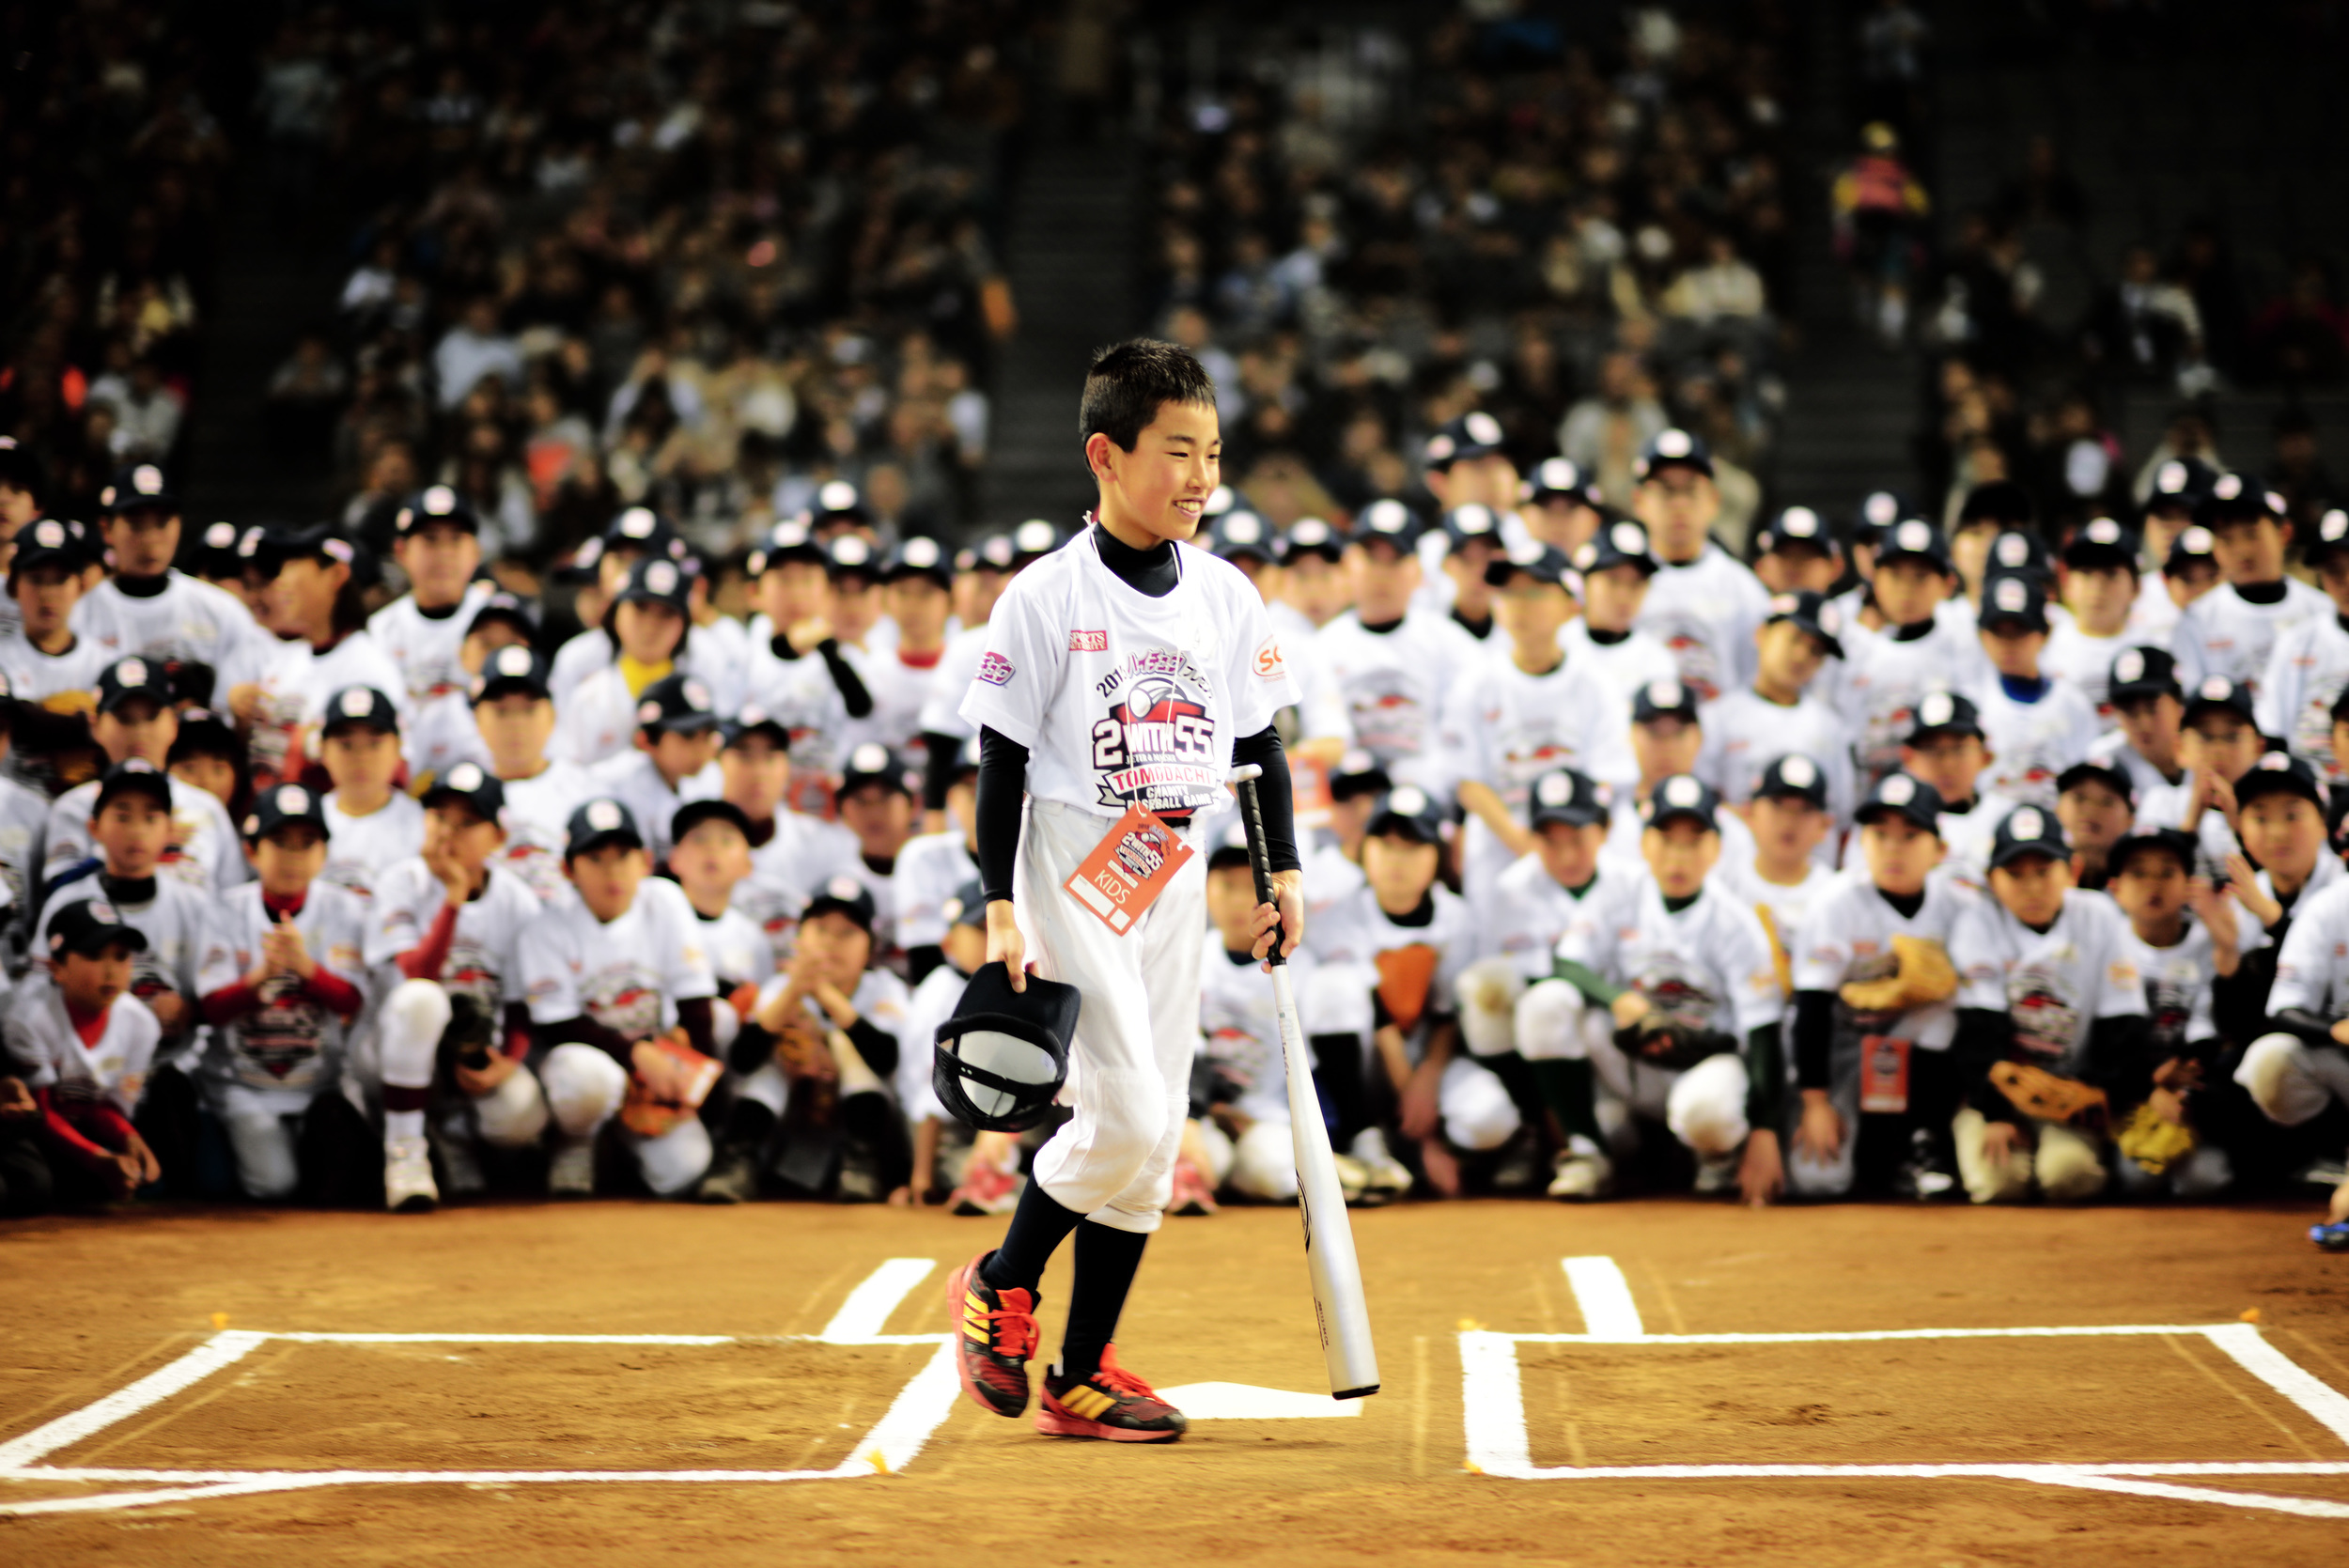 A child prepares to hit a baseball during a batting clinic taught by Derek Jeter and Hideki Matsui, March 21, 2015, at the Tokyo Dome, Japan. The former Yankees teammates partnered once more for the Tomodachi Charity Baseball. (U.S. Air Force photo by Airman 1st Class Delano Scott/Released)